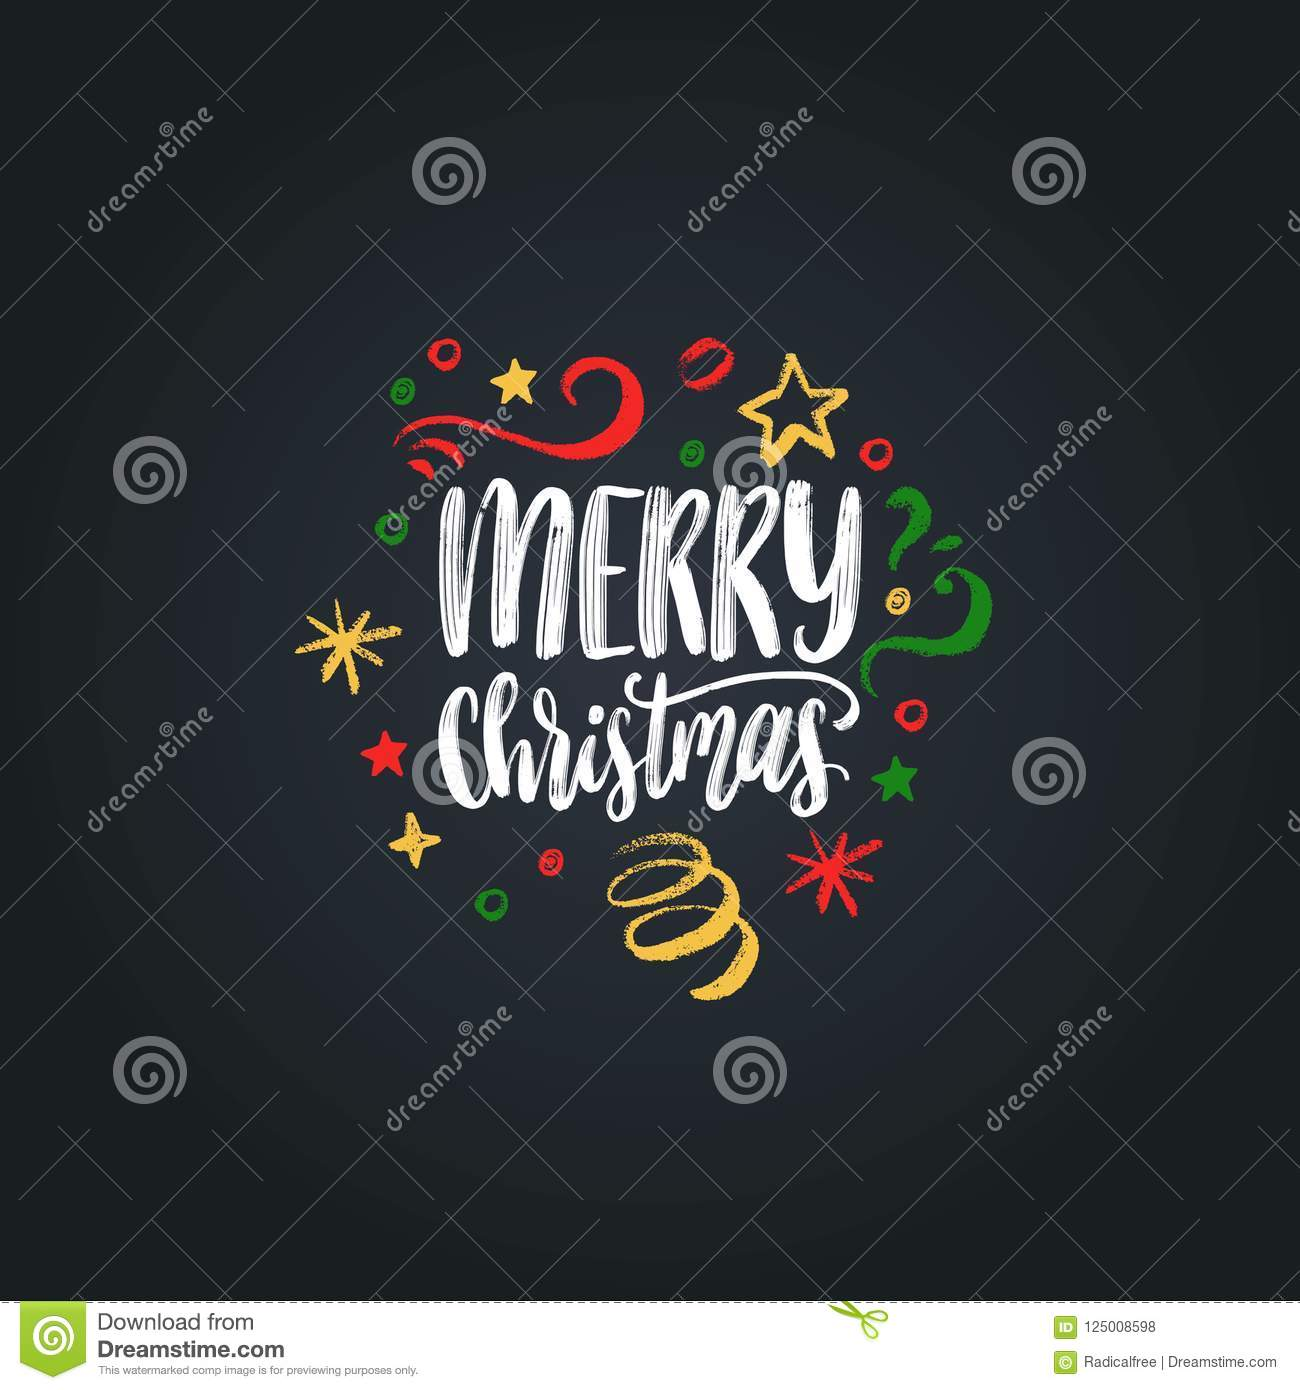 Merry christmas lettering vector hand drawn new year illustration download merry christmas lettering vector hand drawn new year illustration happy holidays greeting card m4hsunfo